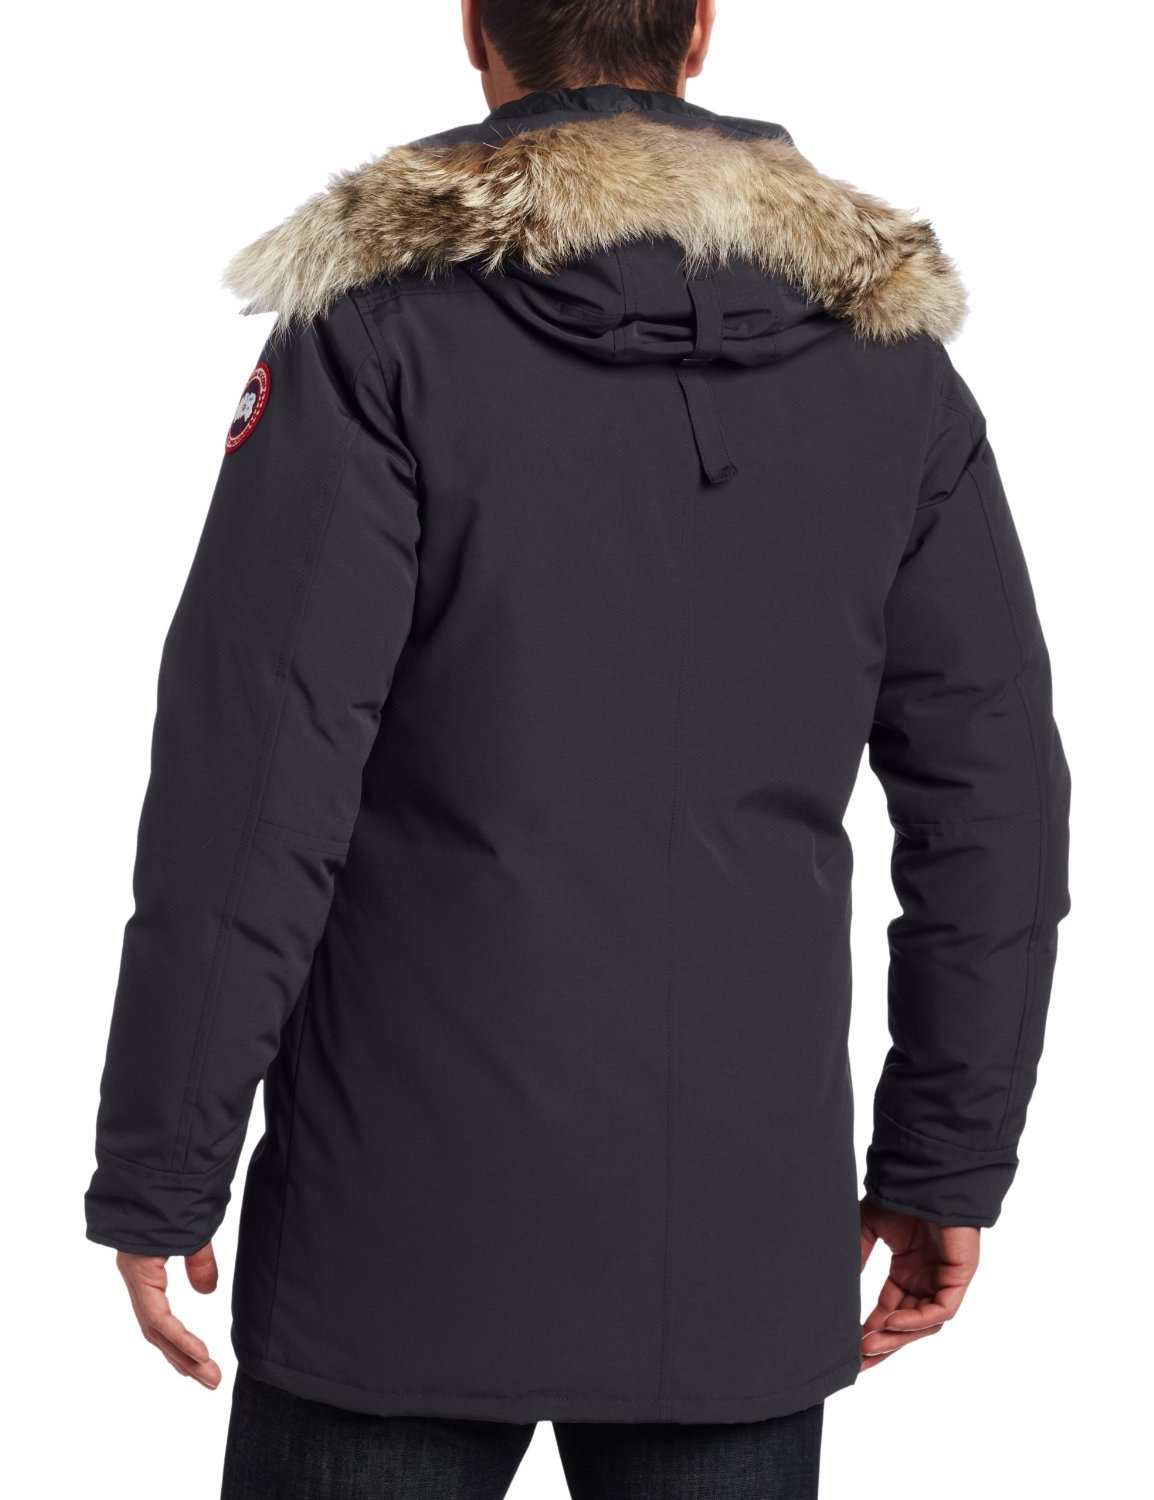 does canada goose jackets use real fur